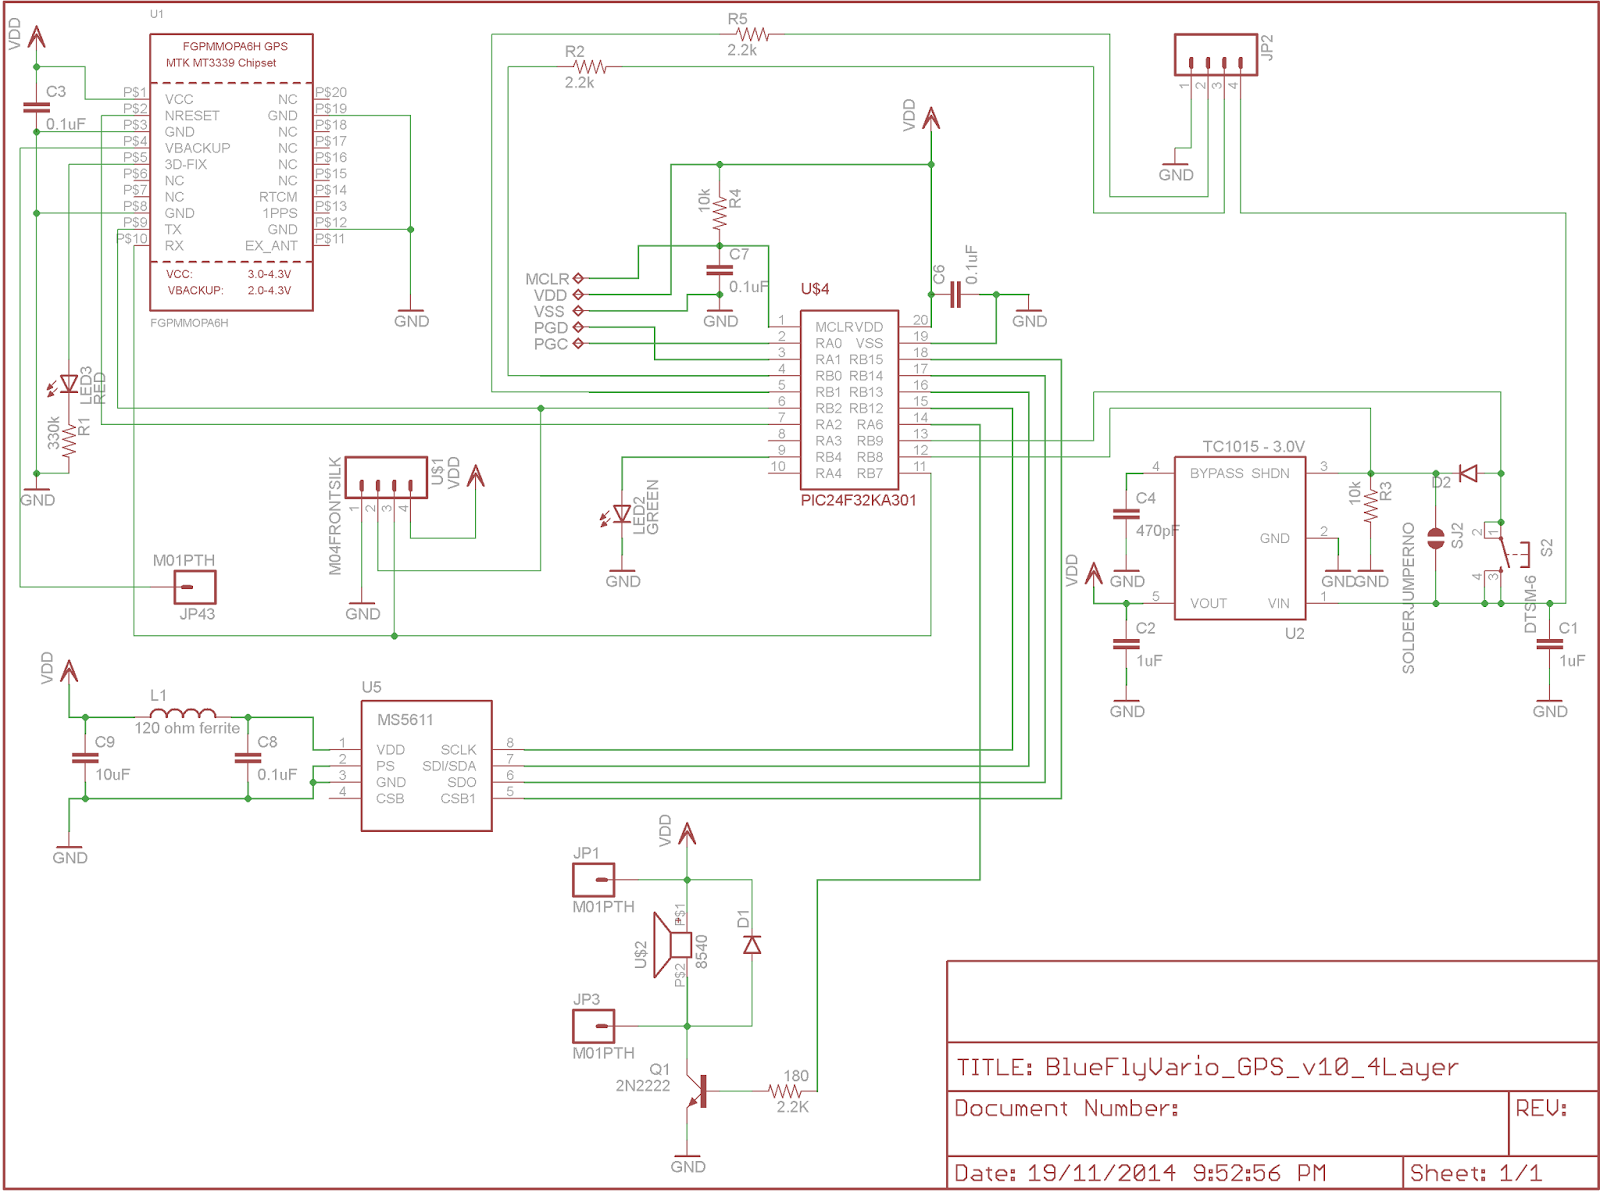 Variometer wiring schematic wiring diagram database blue fly vario development blueflyvario ttl gps v10 released rh blueflyvario blogspot com hvac wiring schematics air conditioner schematic wiring diagram asfbconference2016 Image collections